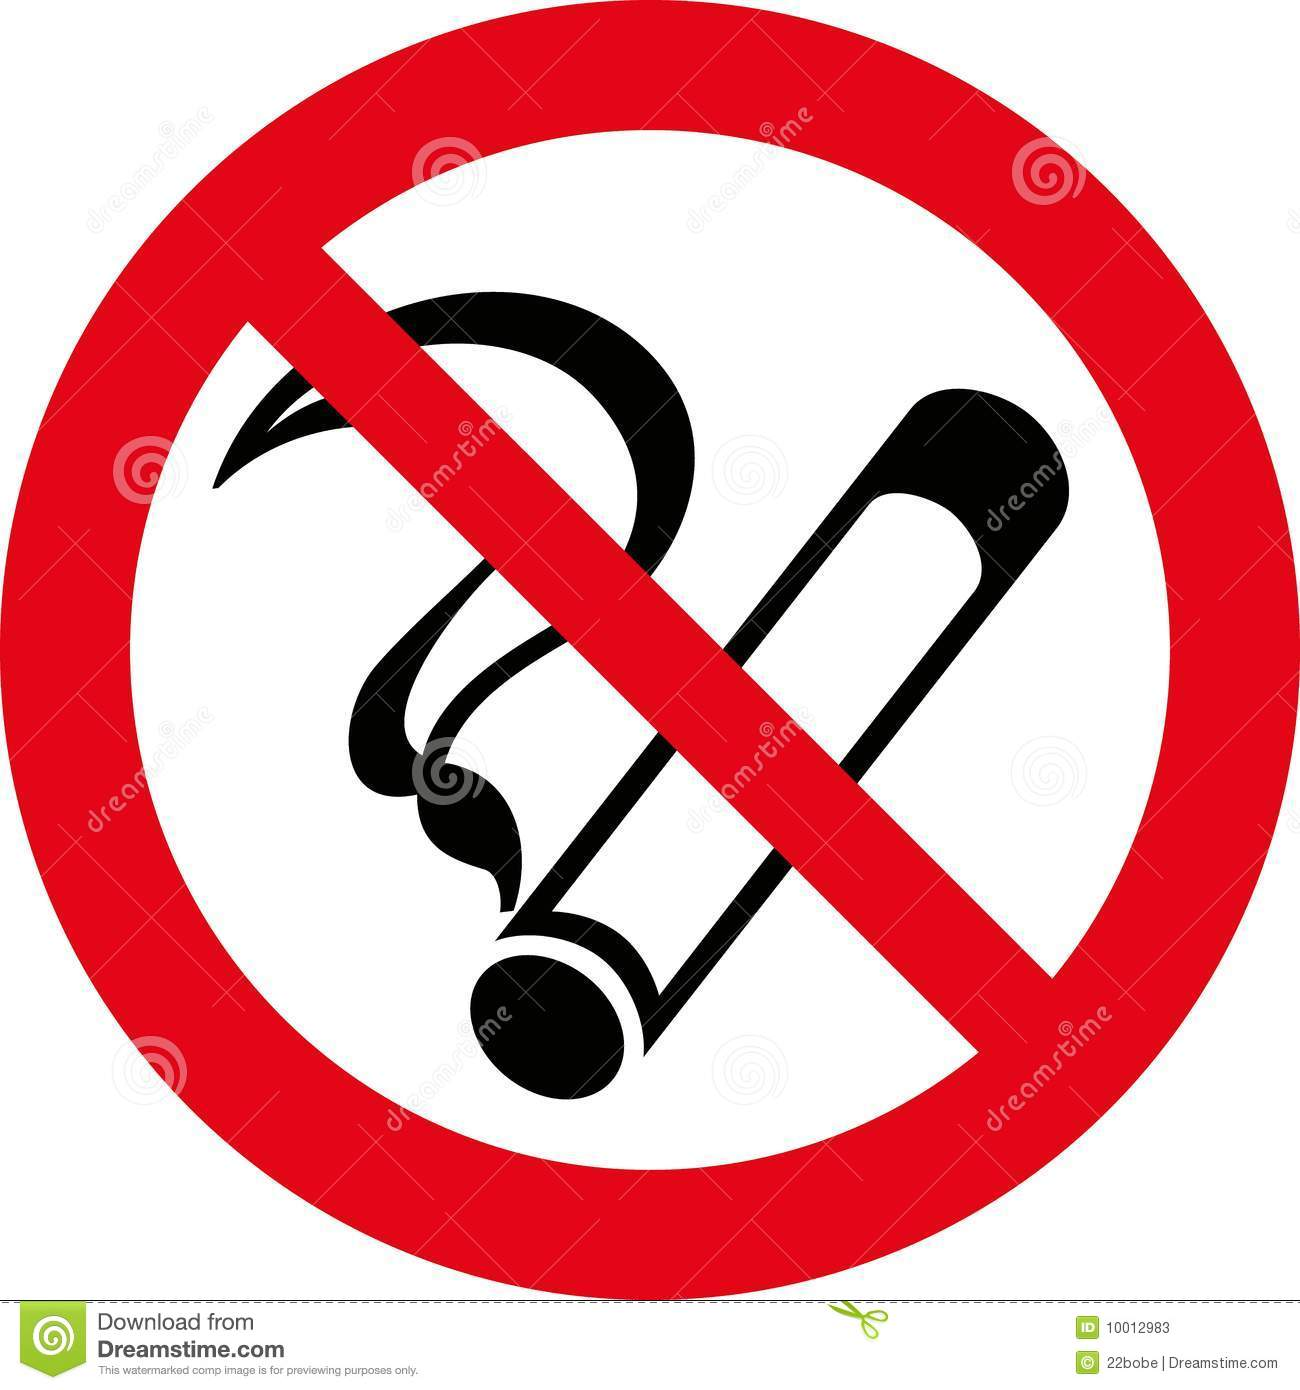 No Smoking 7 (+ Vector) Stock Photos - Image: 10012983